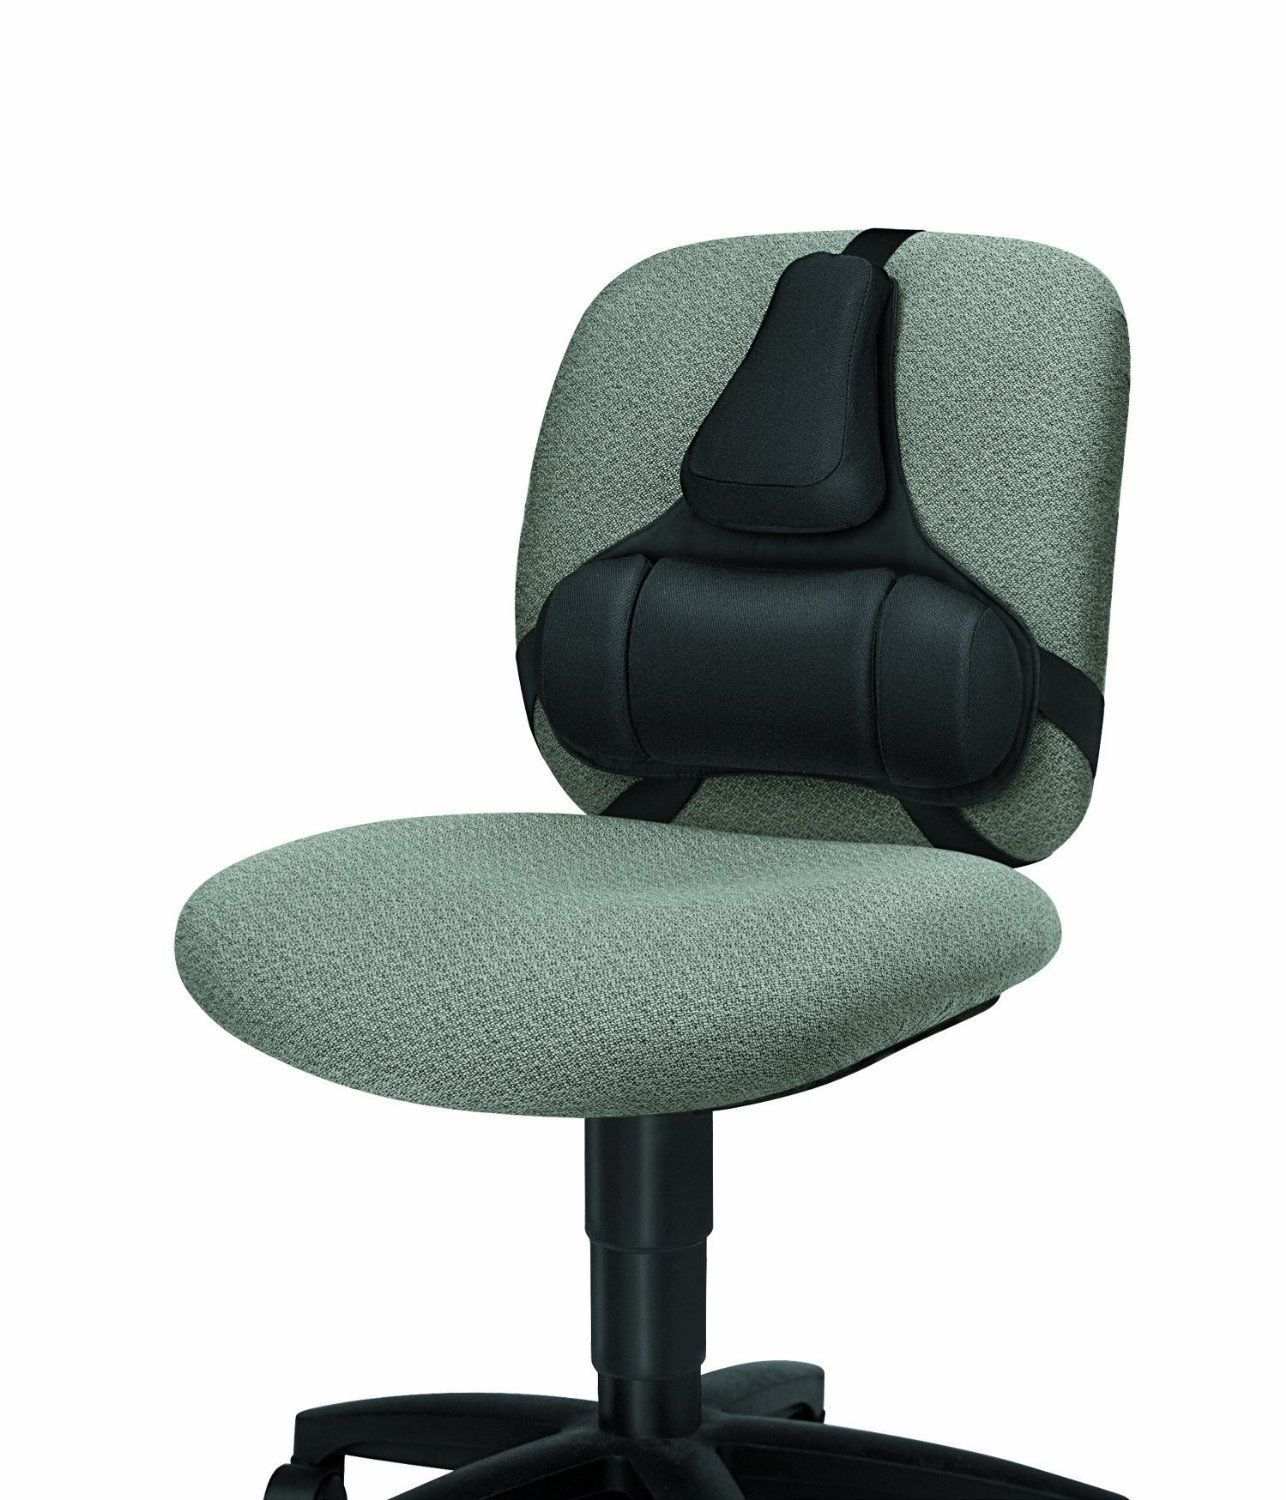 chair lumbar support leather swivel recliner and stool strap on back desk ergonomic office